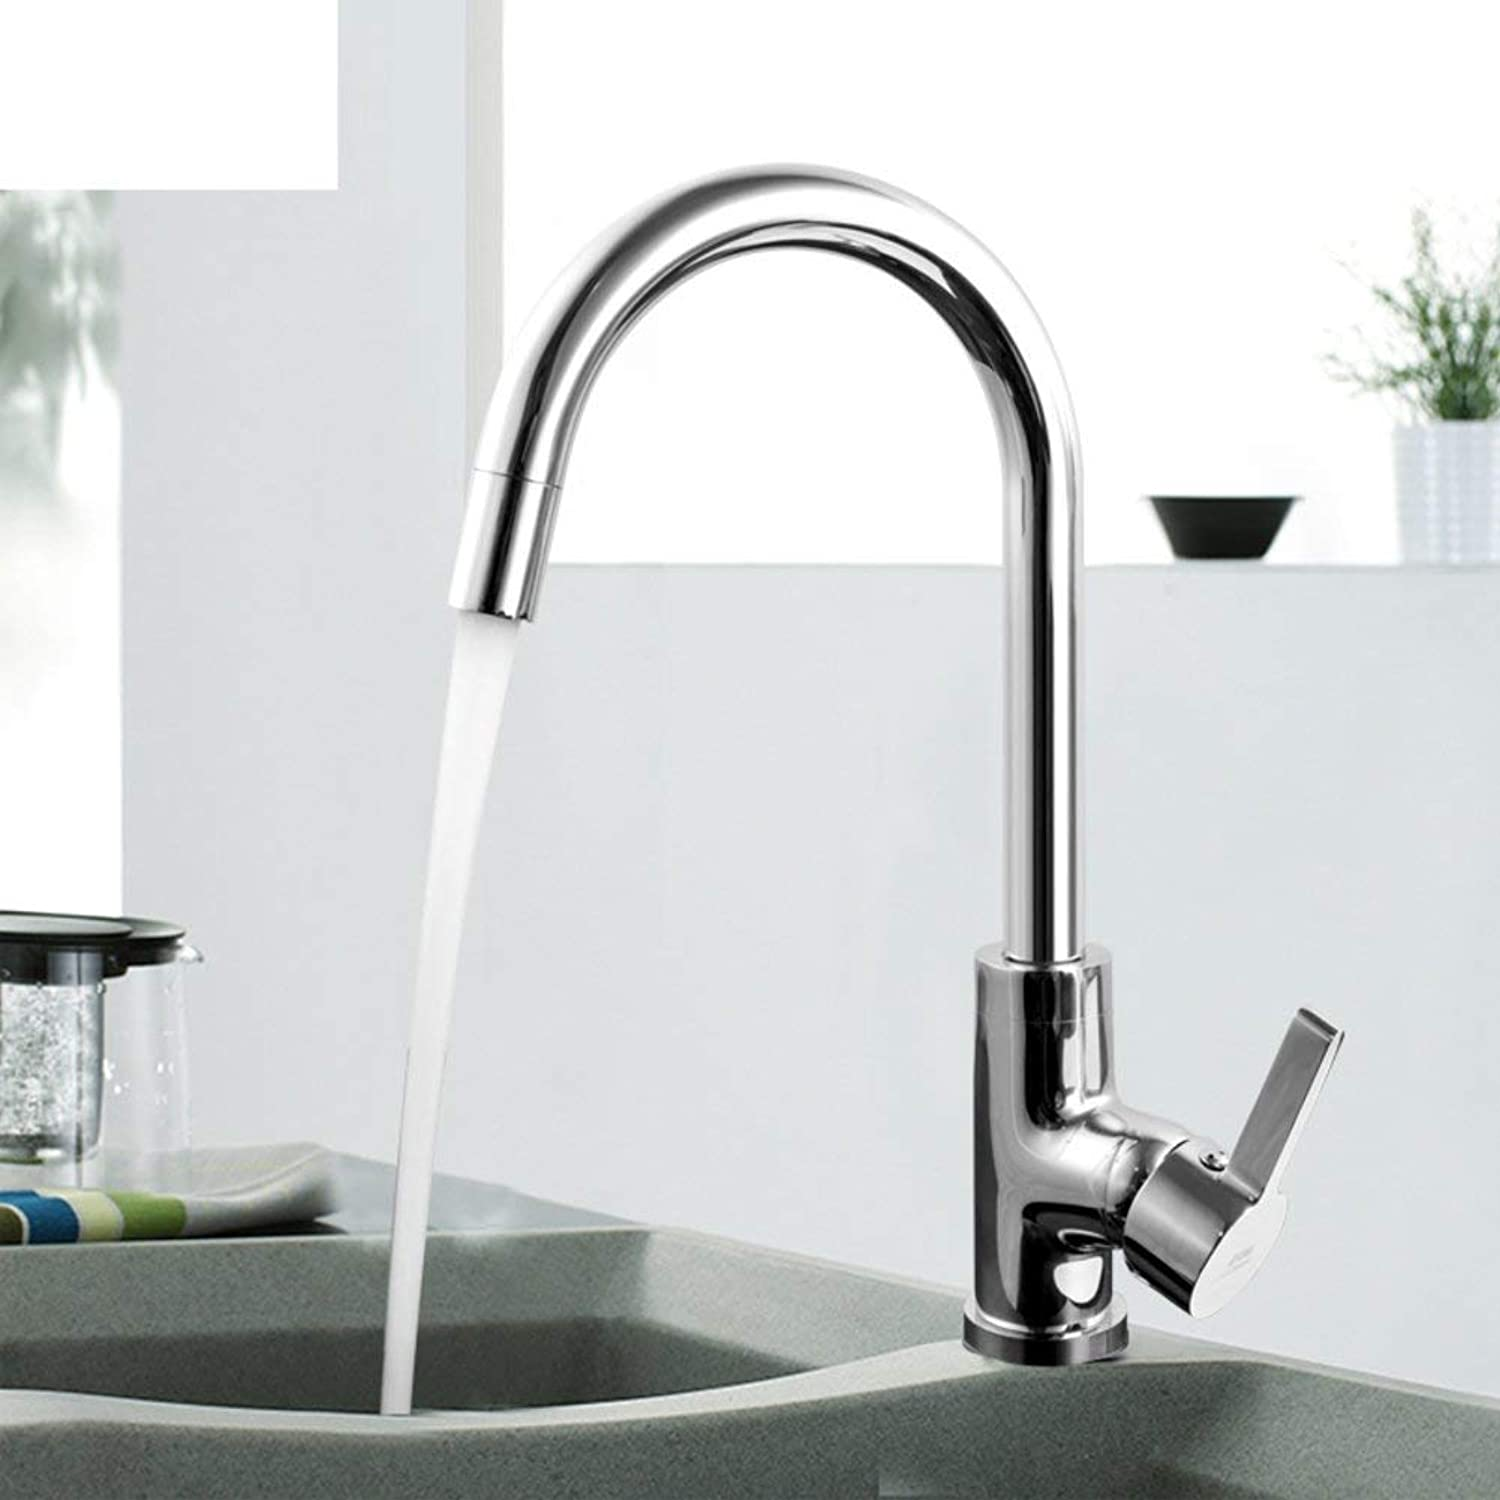 Oudan Kitchen faucet Vegetables basin faucet Hot and cold sink faucet redary washing faucet-A (color   -, Size   -)